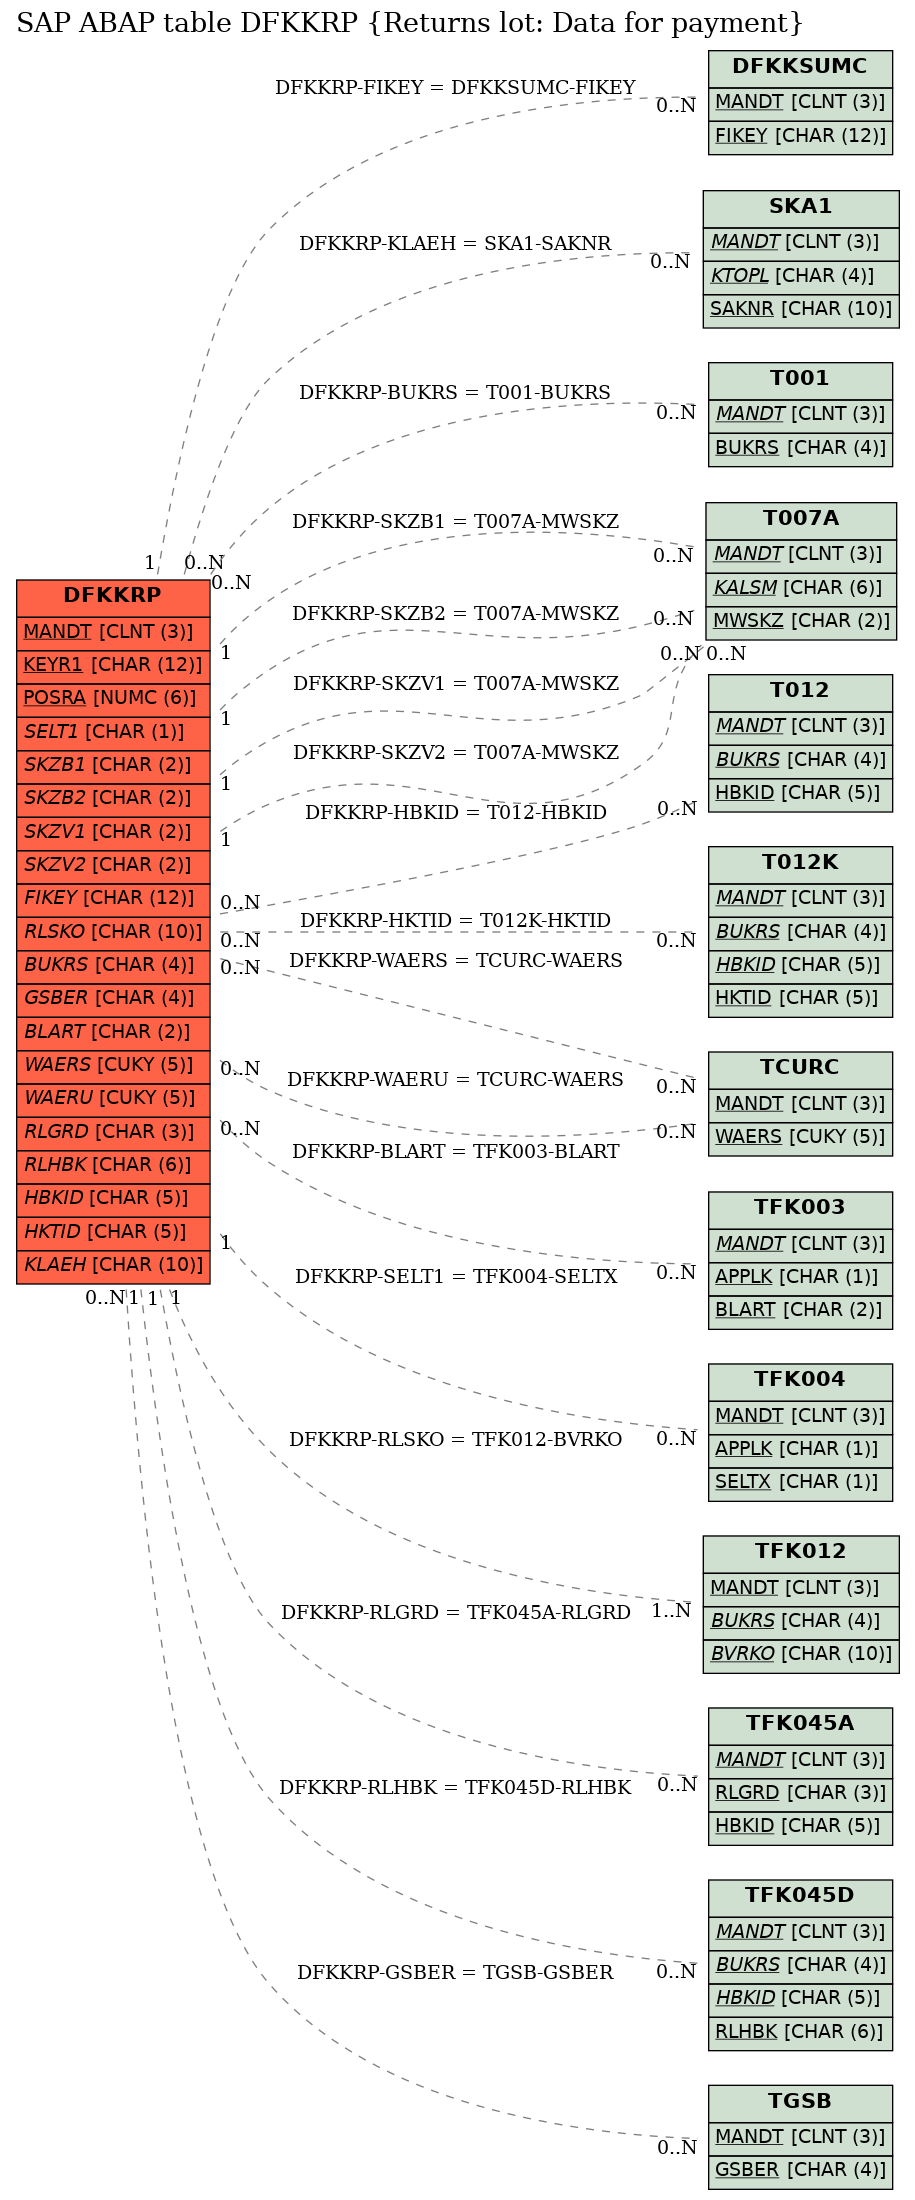 E-R Diagram for table DFKKRP (Returns lot: Data for payment)